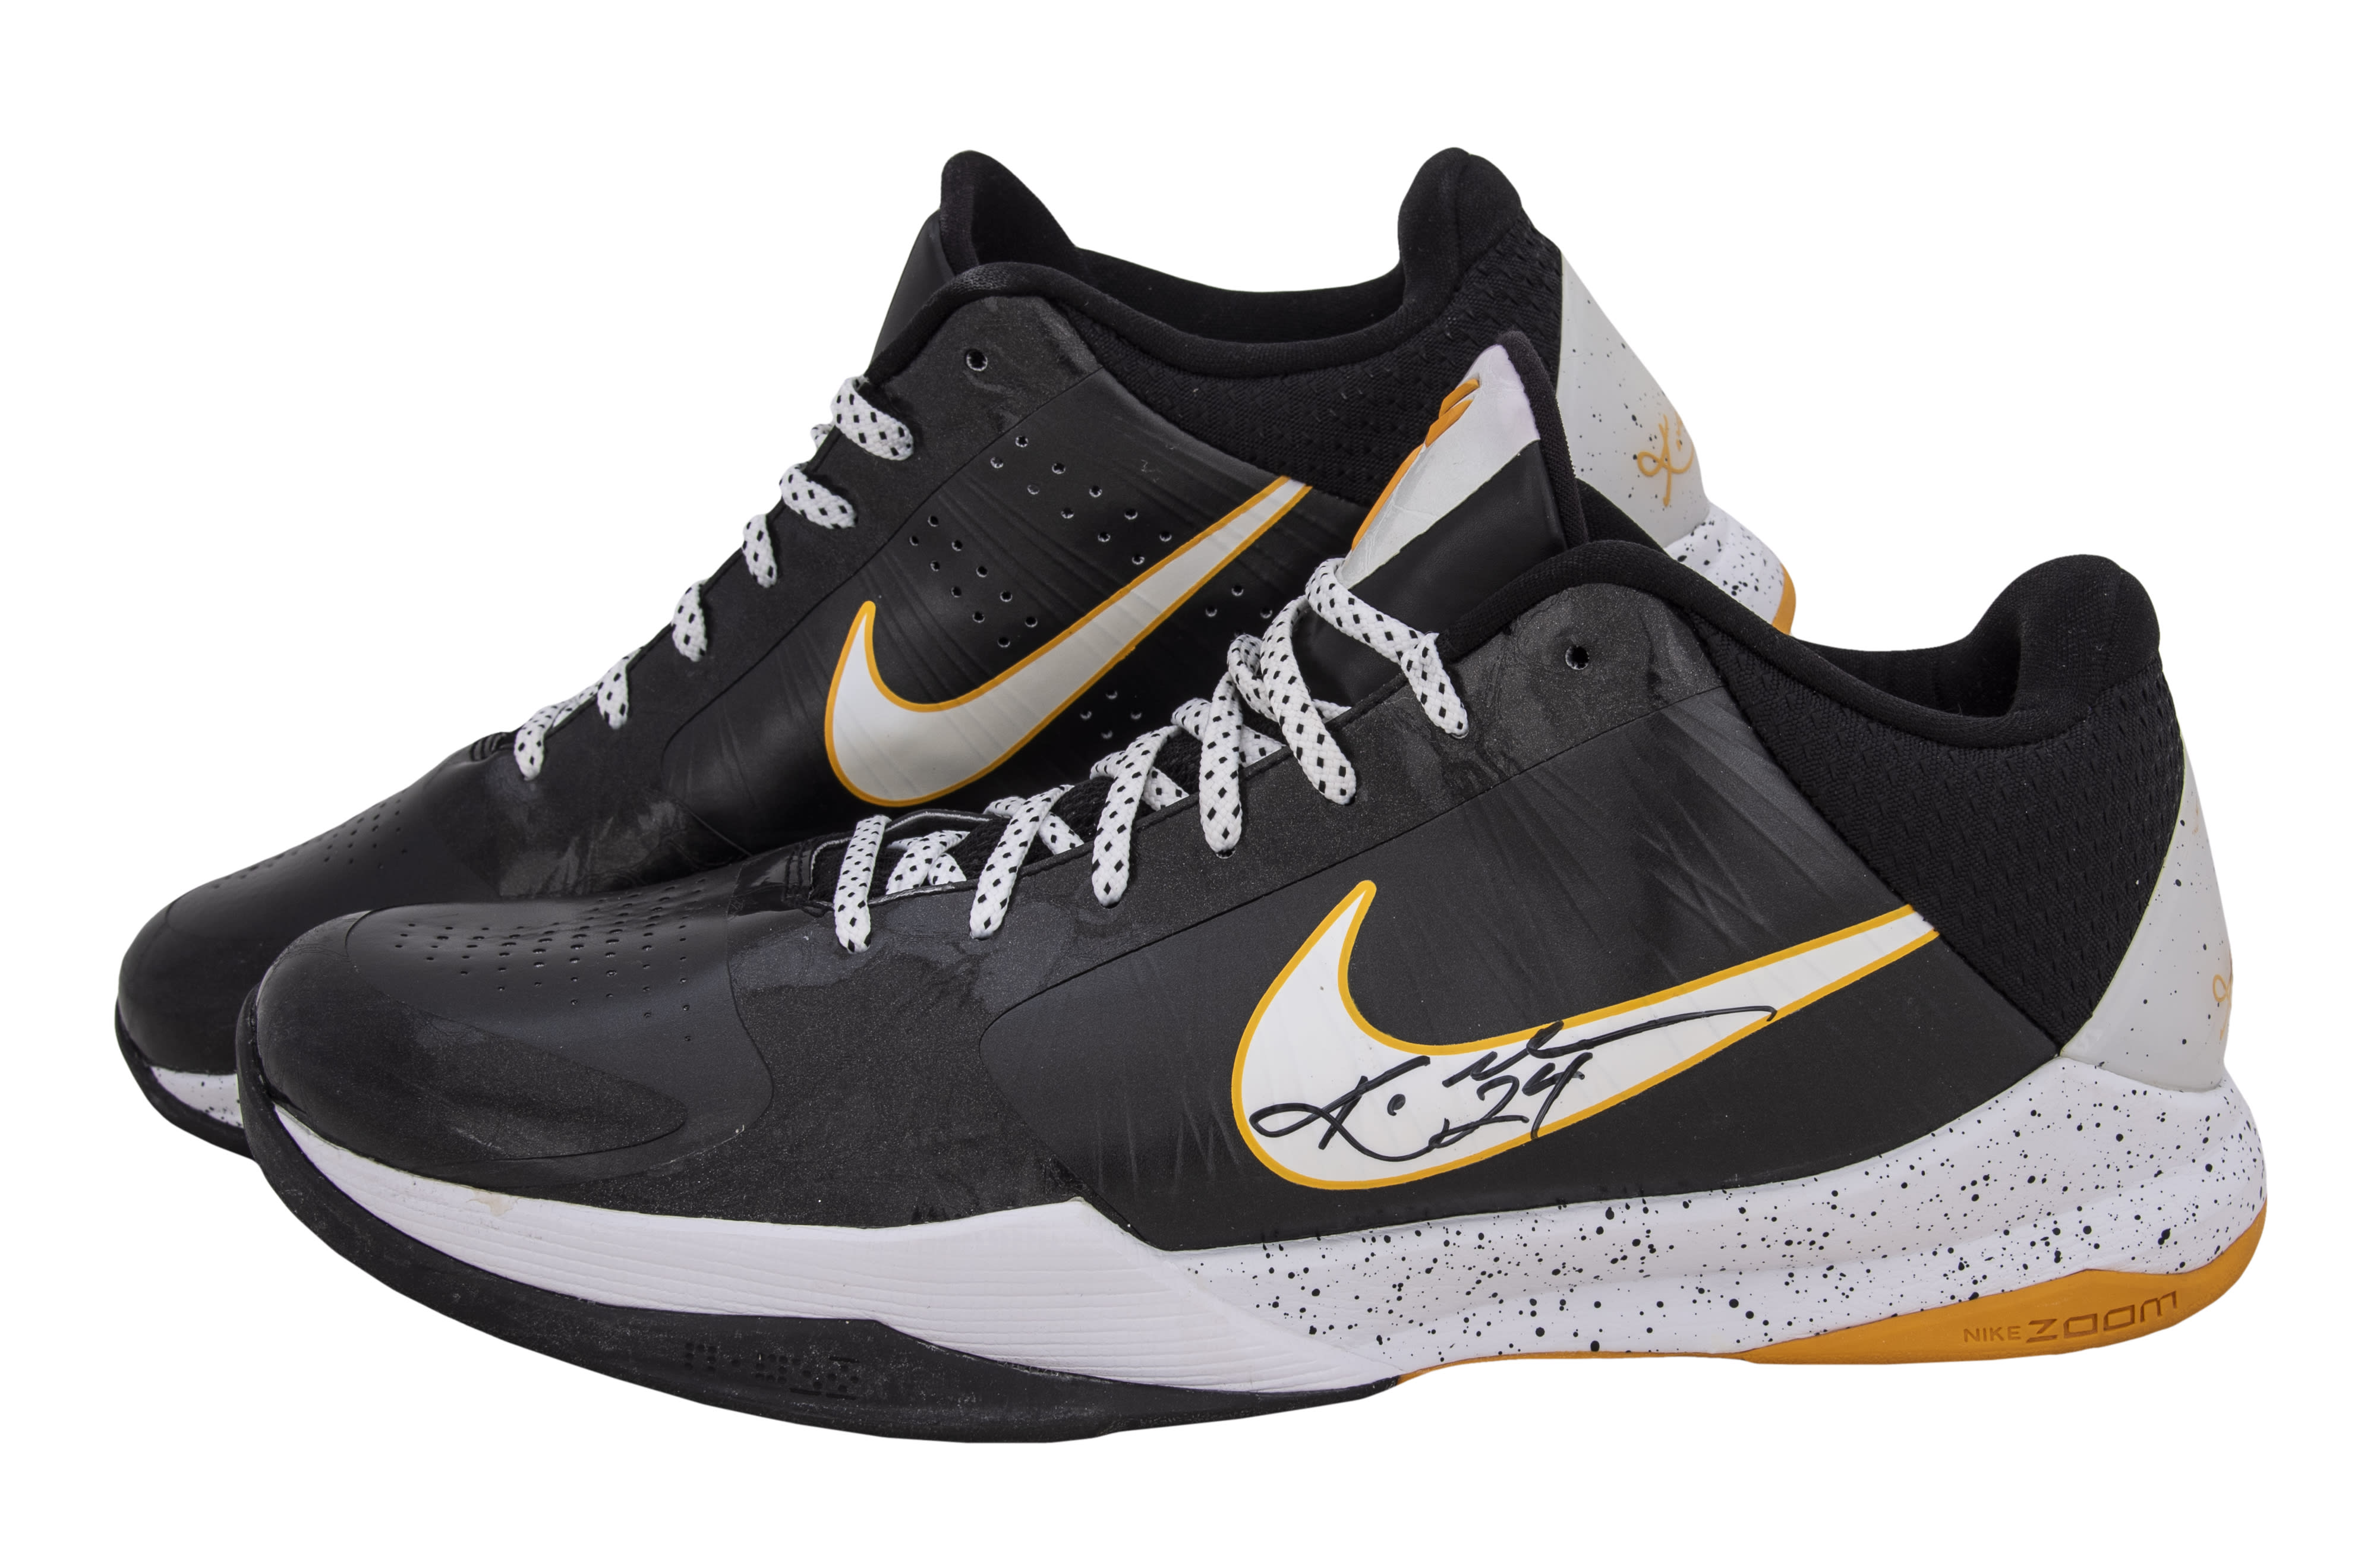 Kobe Bryant 'Hall of Fame' Auction Nike Kobe 5 'Del Sol'